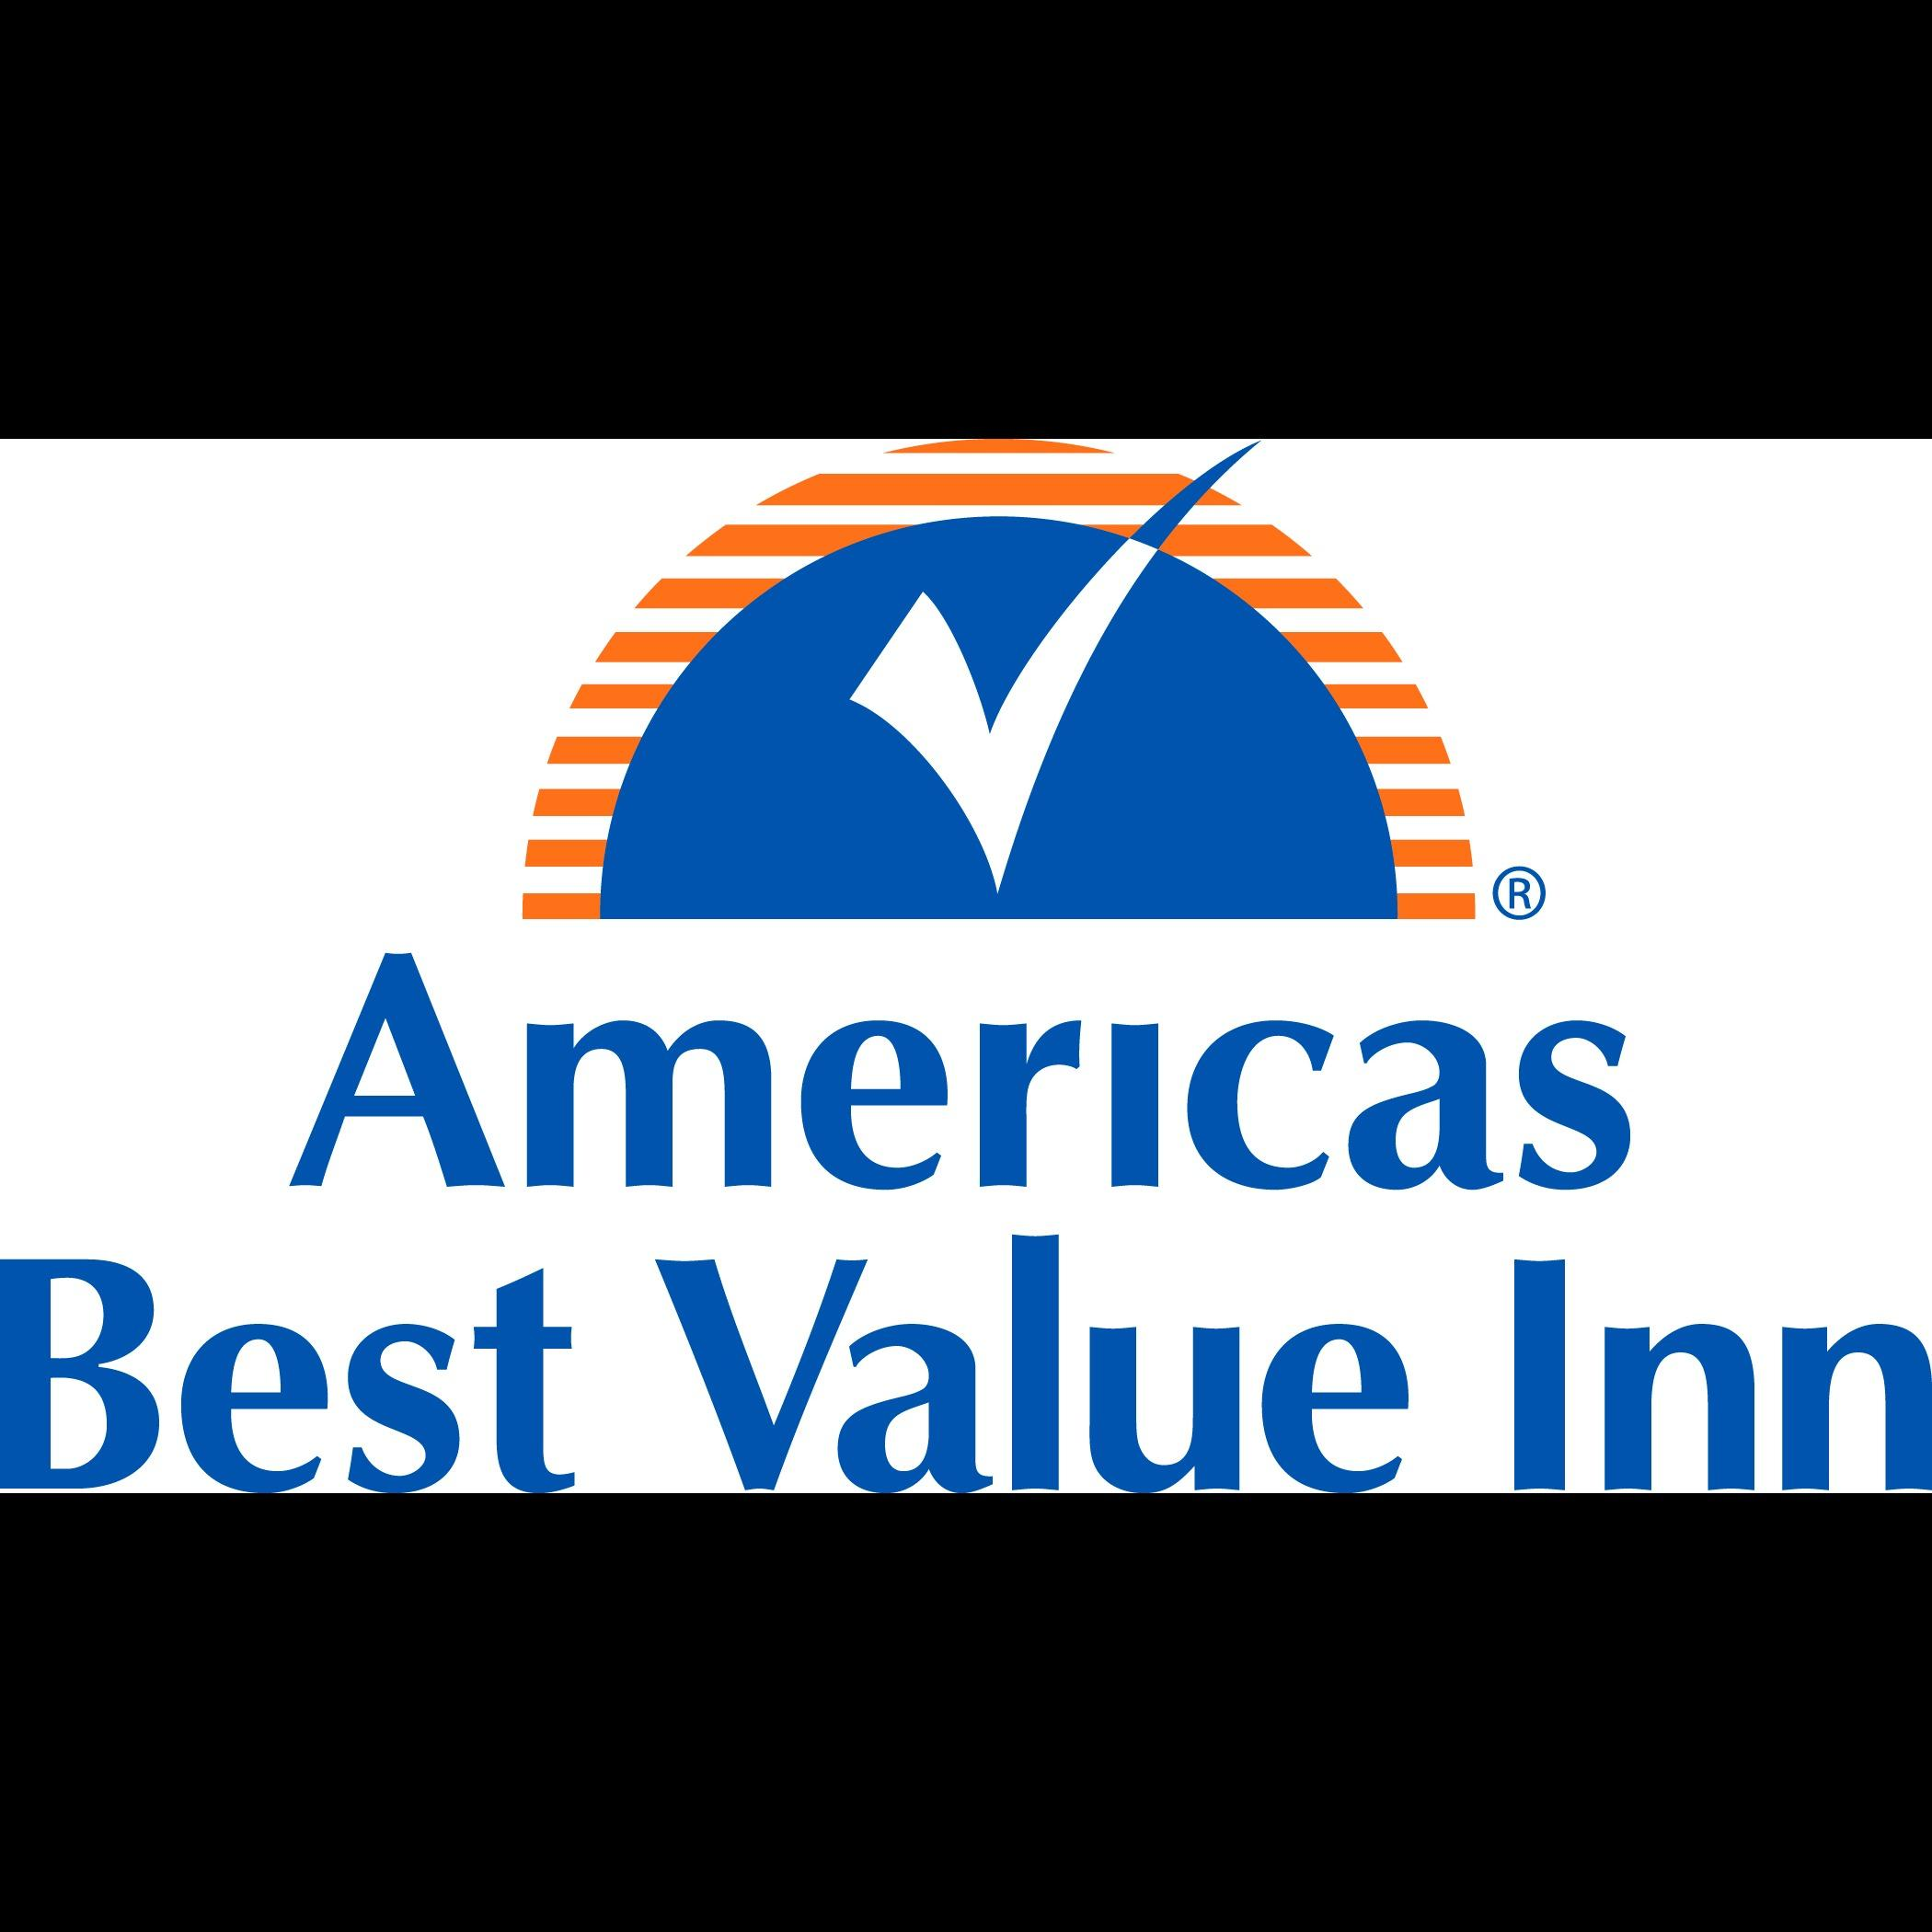 Americas Best Value Inn Los Angeles